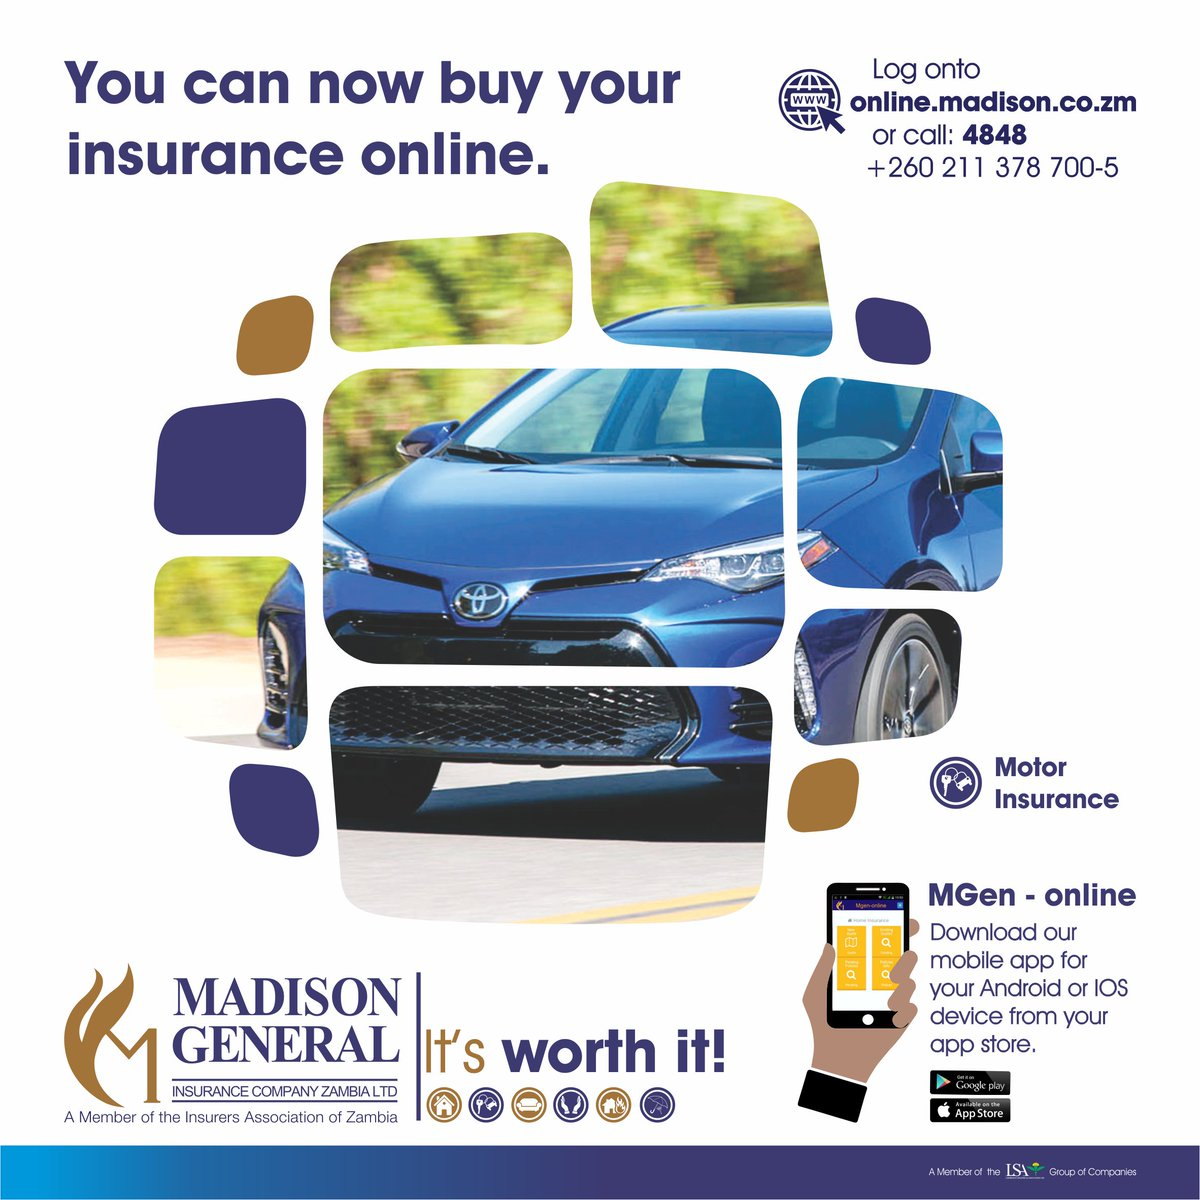 Madison General Insurance Company Zambia Ltd On Twitter Got That New Car Insure It With Mgen And Have Your Motor Insurance Policy Delivered To You In The Comfort Of Your Home Insure